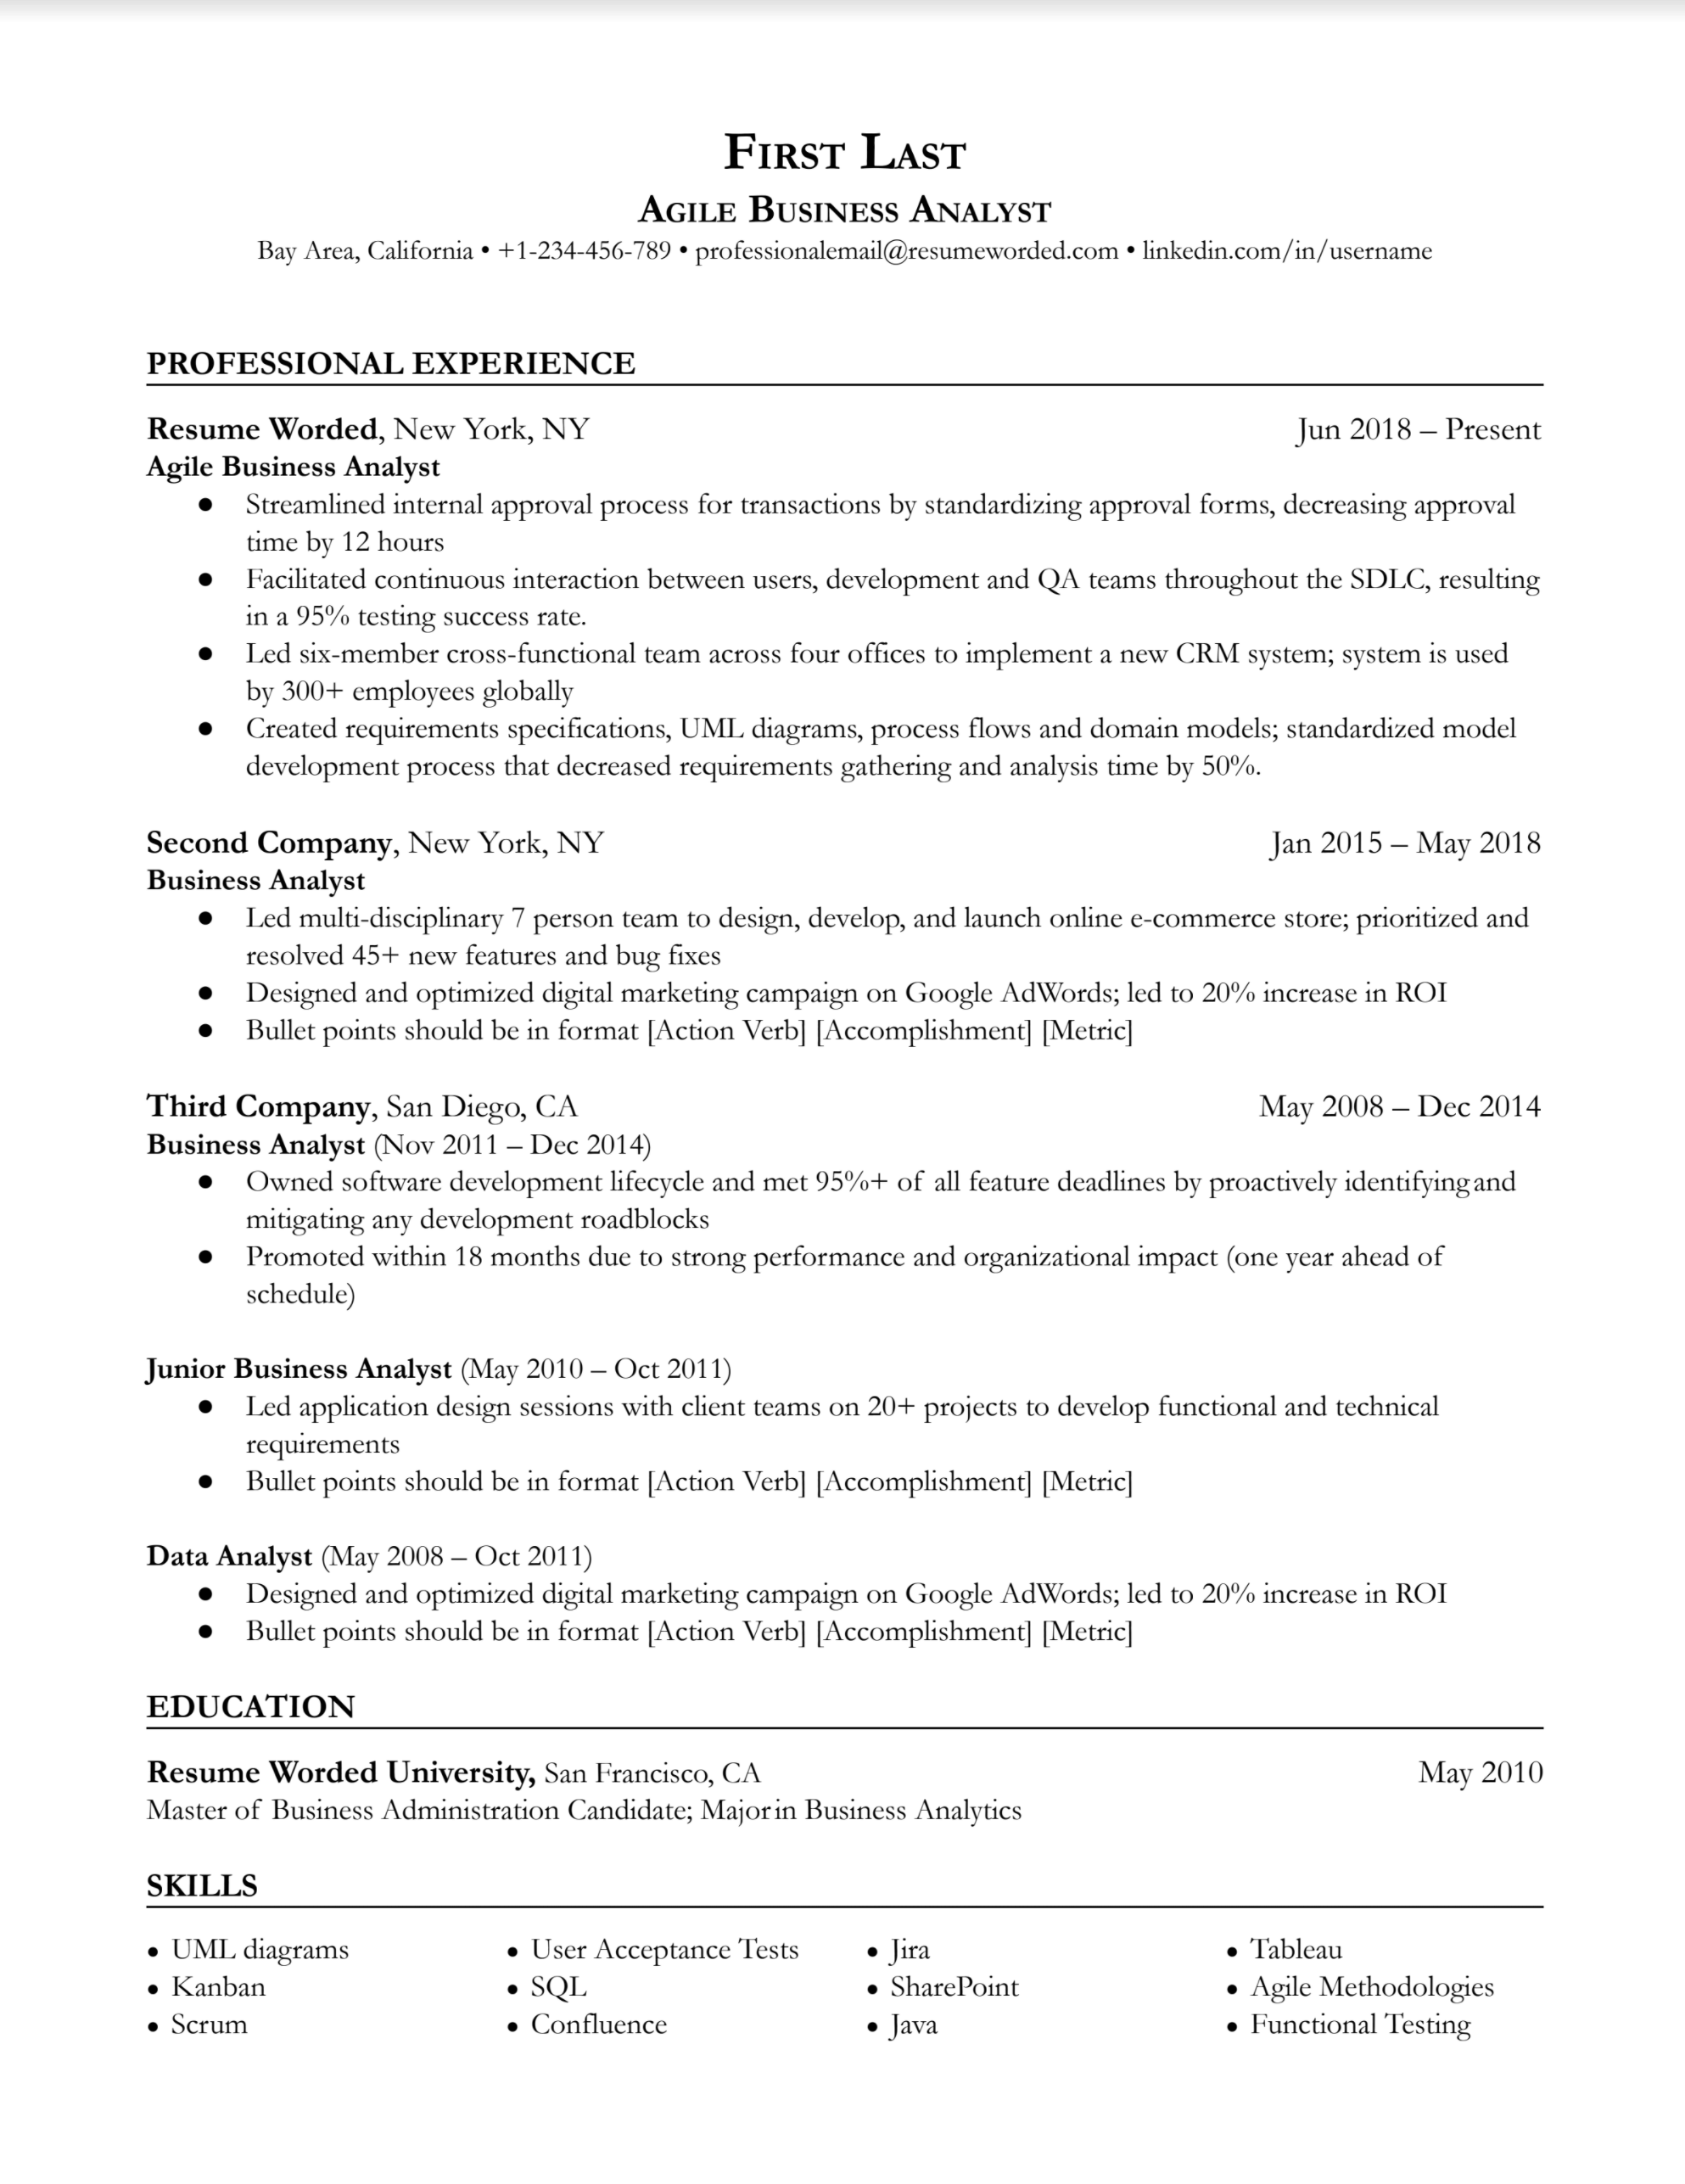 Agile business analyst resume with work history and strong verbs